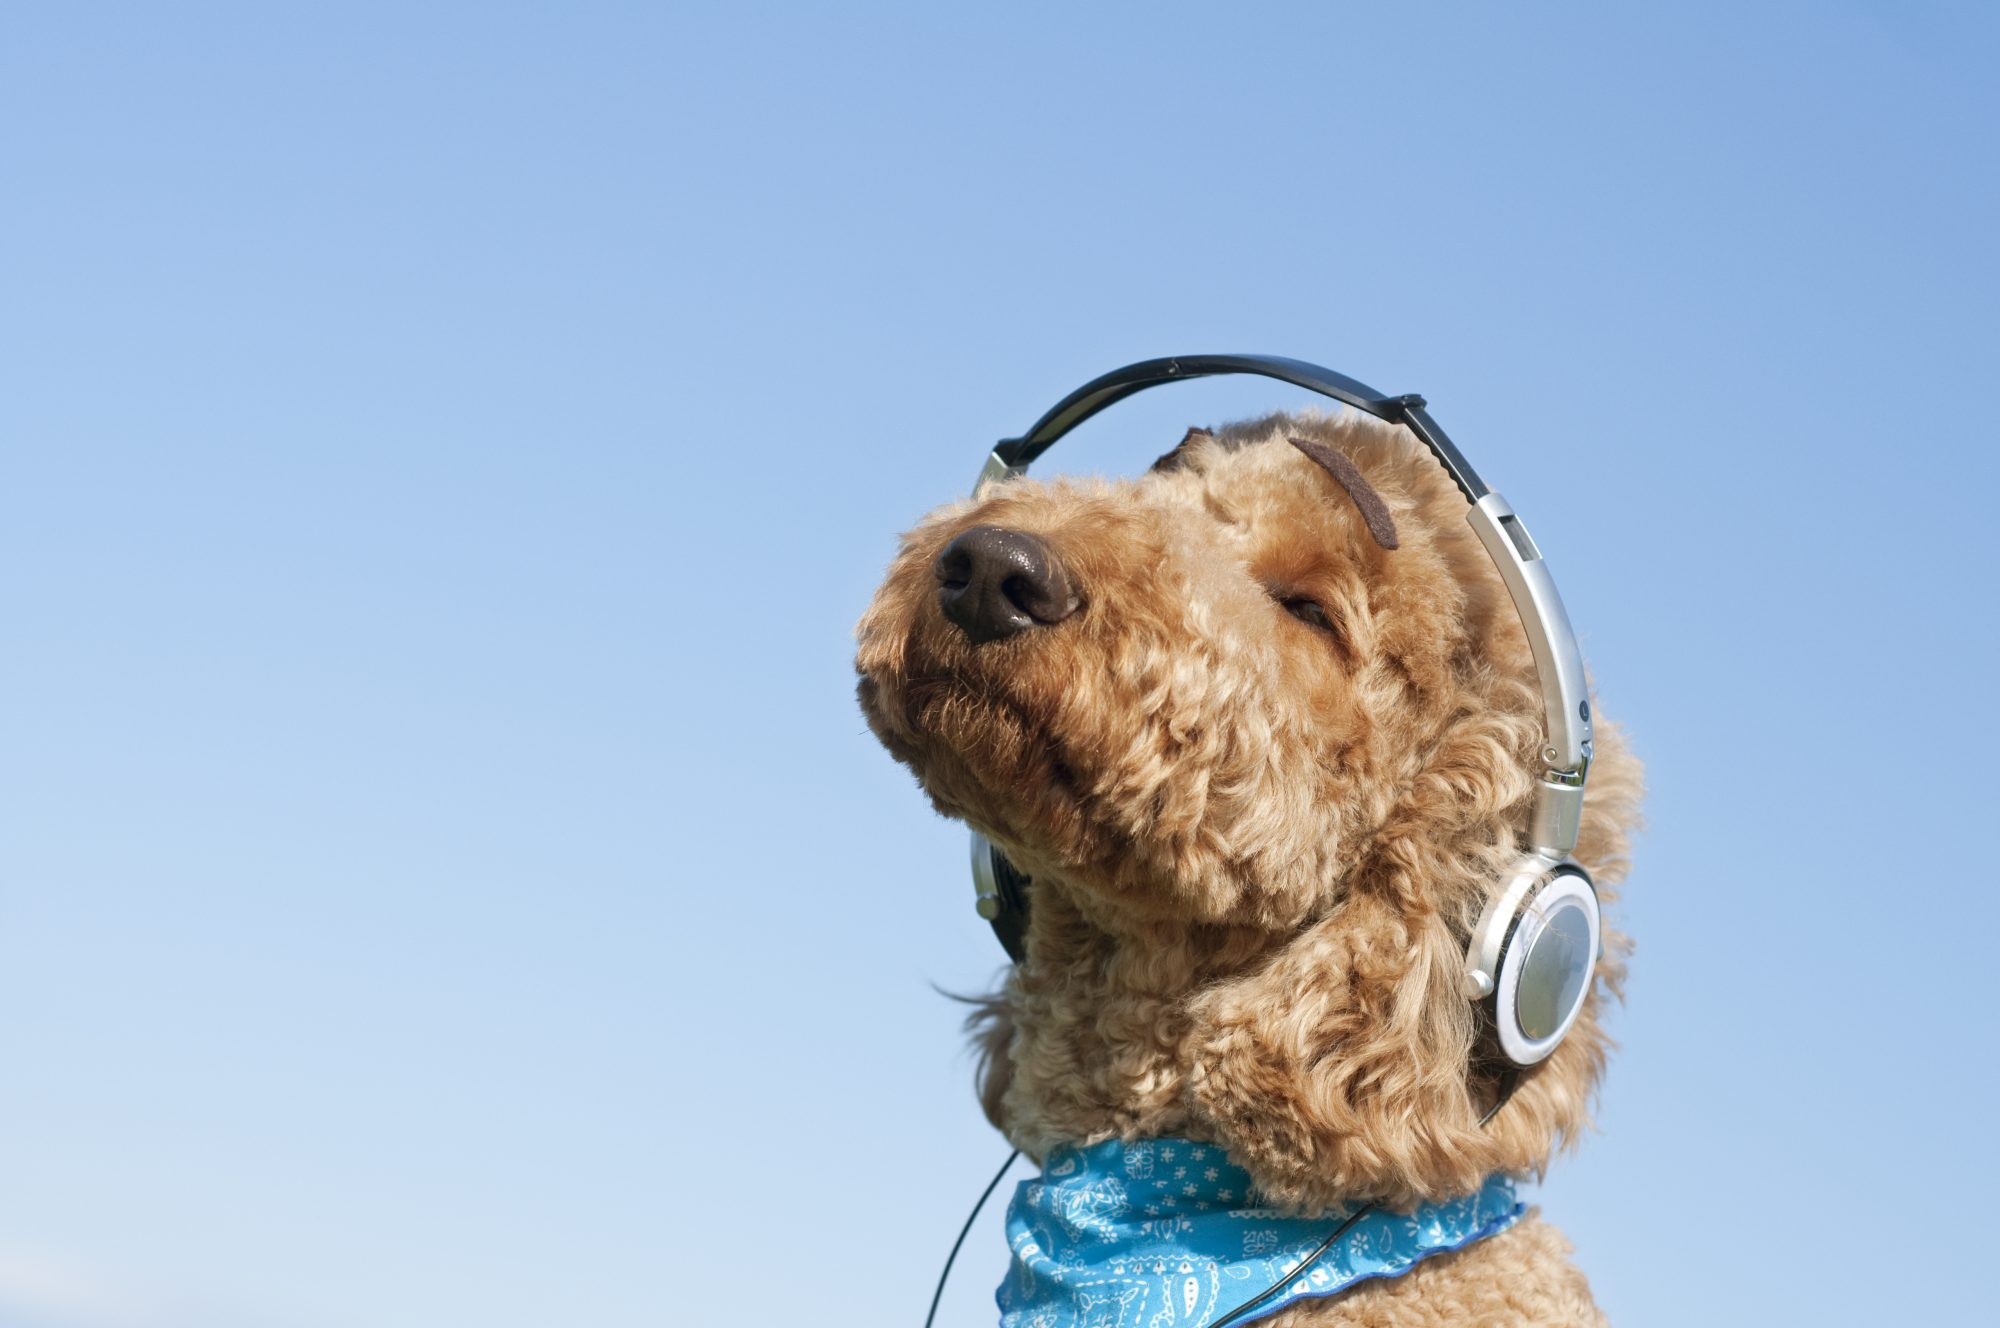 Dog listening to music with headphone